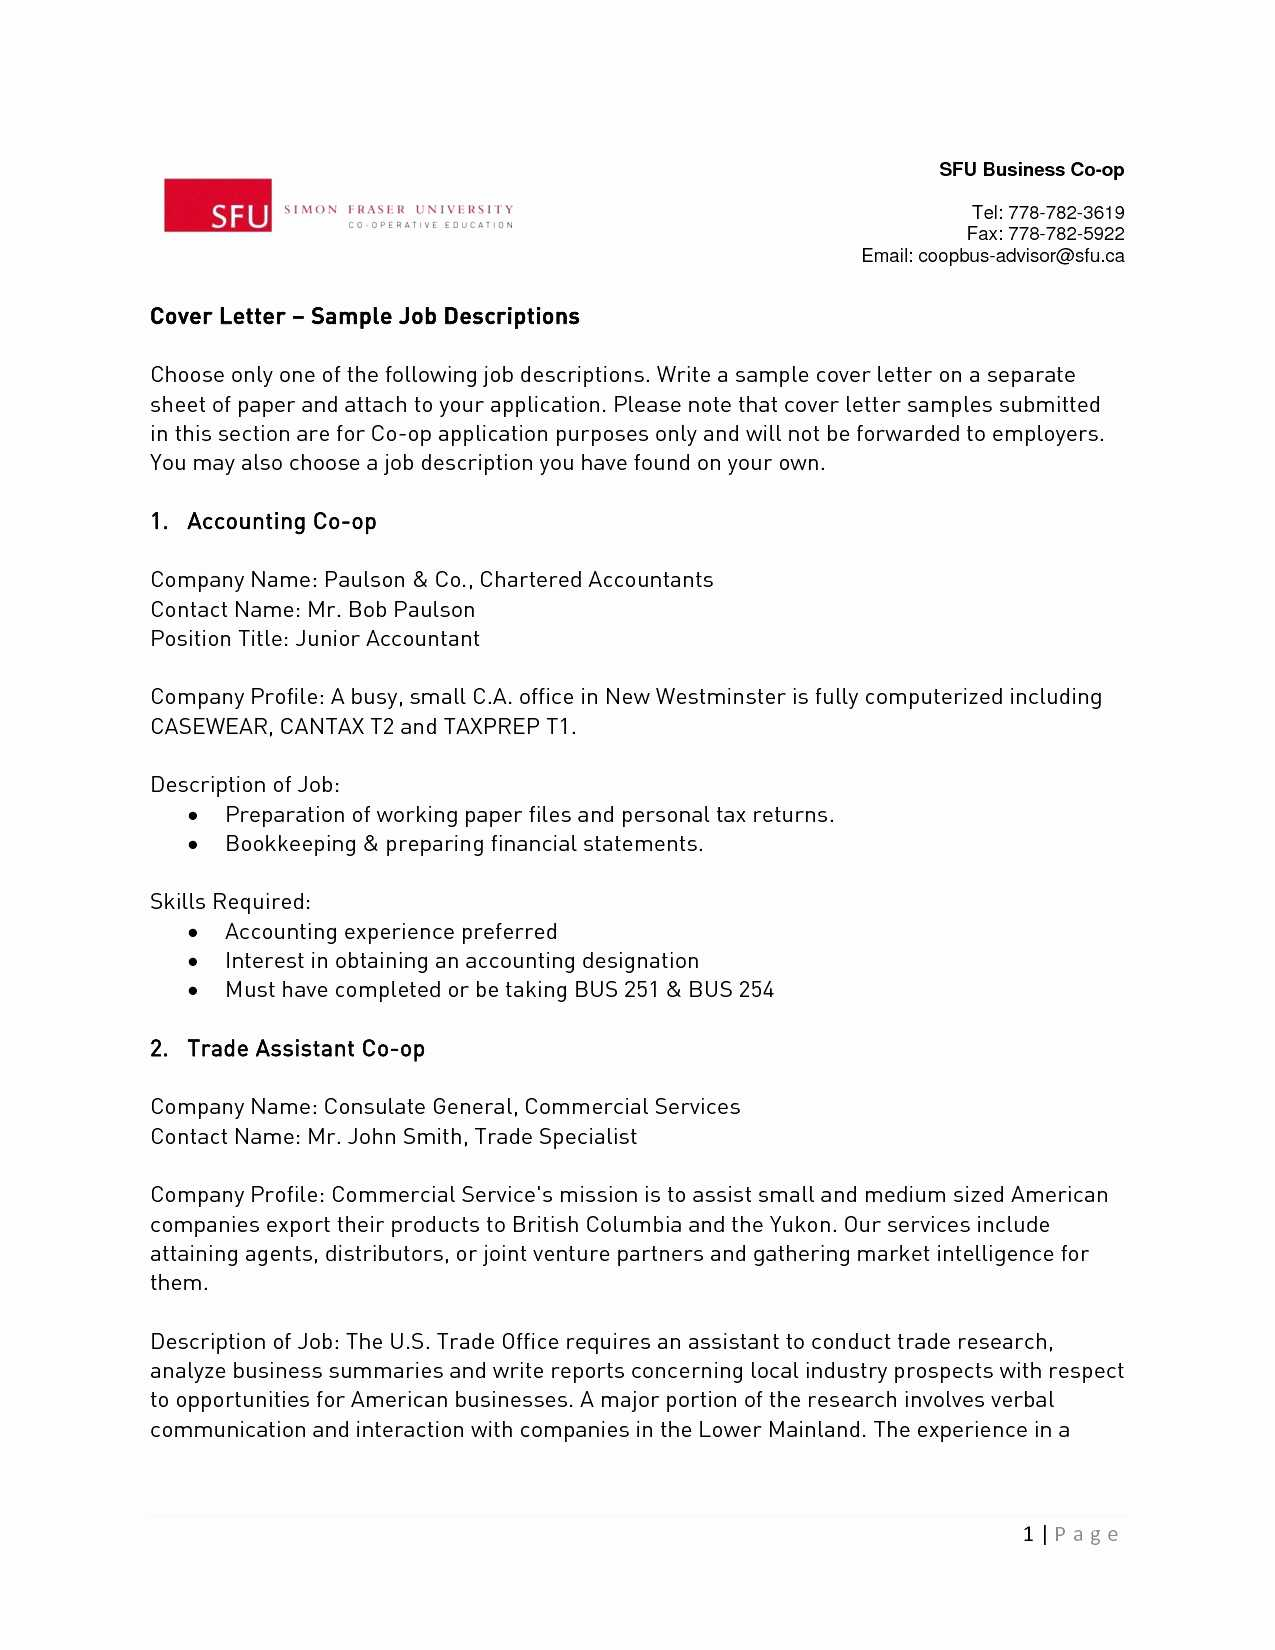 Mission Letter Template - Early Childhood Philosophy Statement Examples Also Resume and Cover